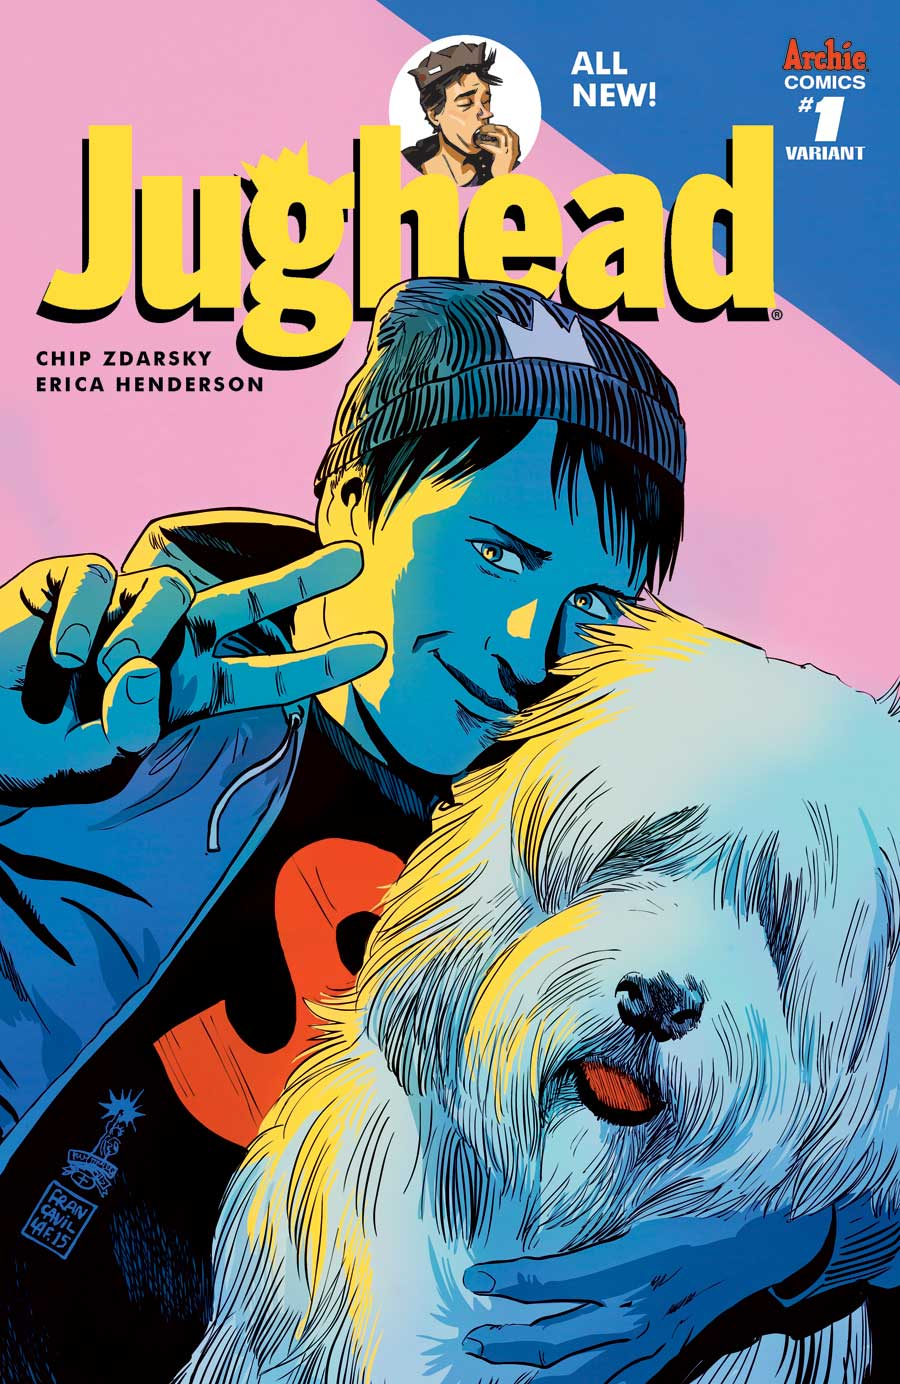 Archie Preview: Jughead #1